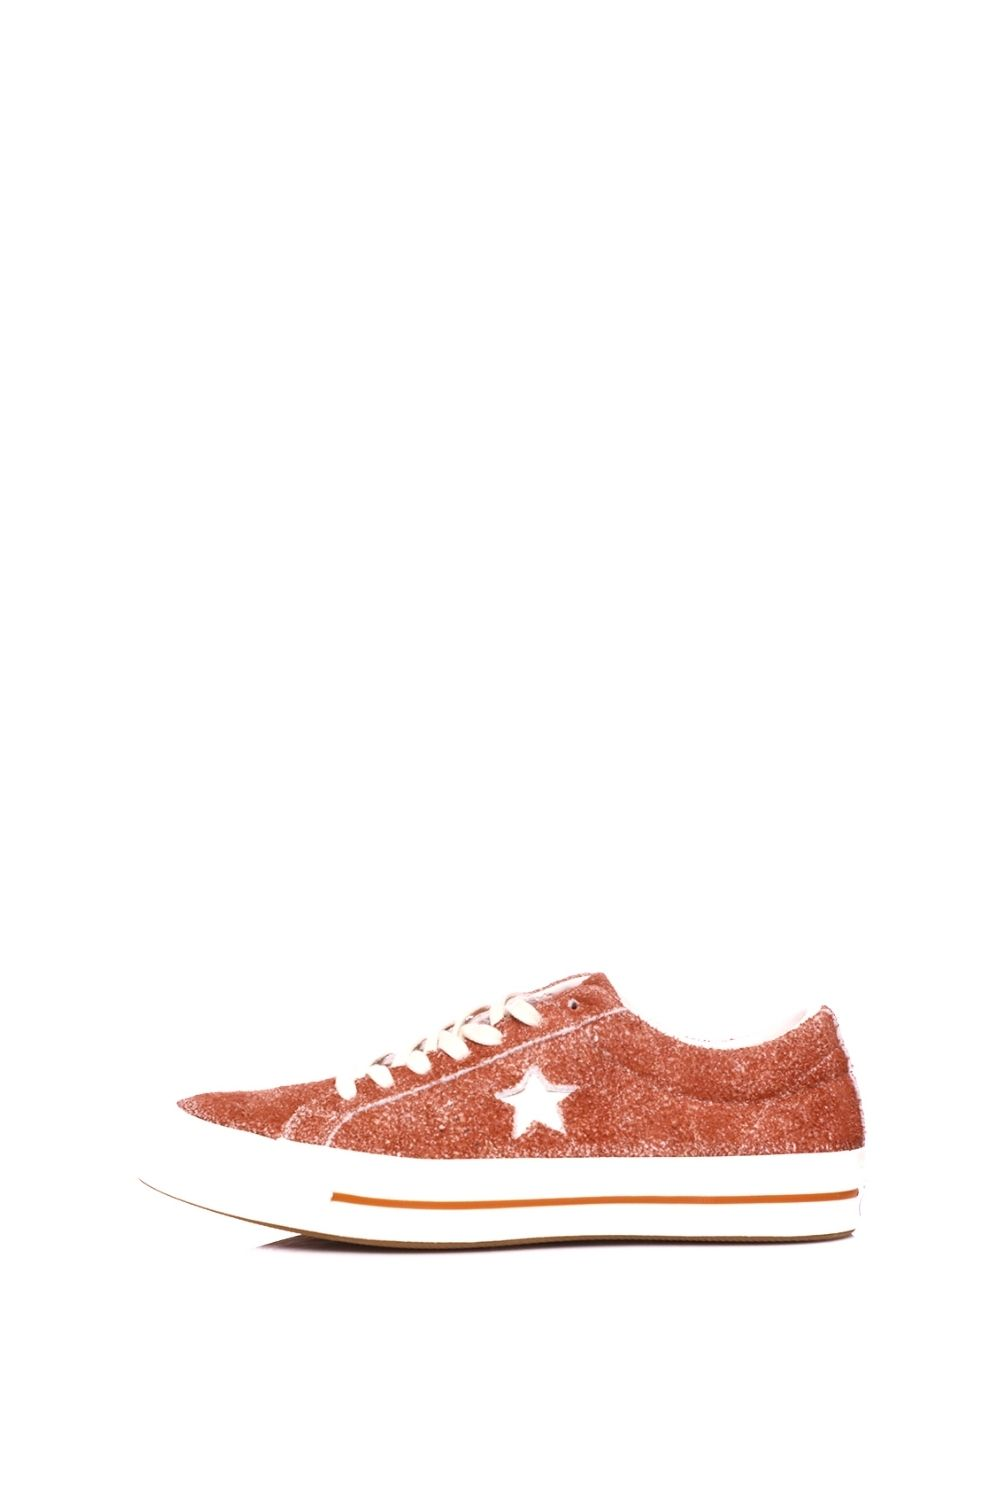 CONVERSE – Unisex sneakers One Star πορτοκαλί